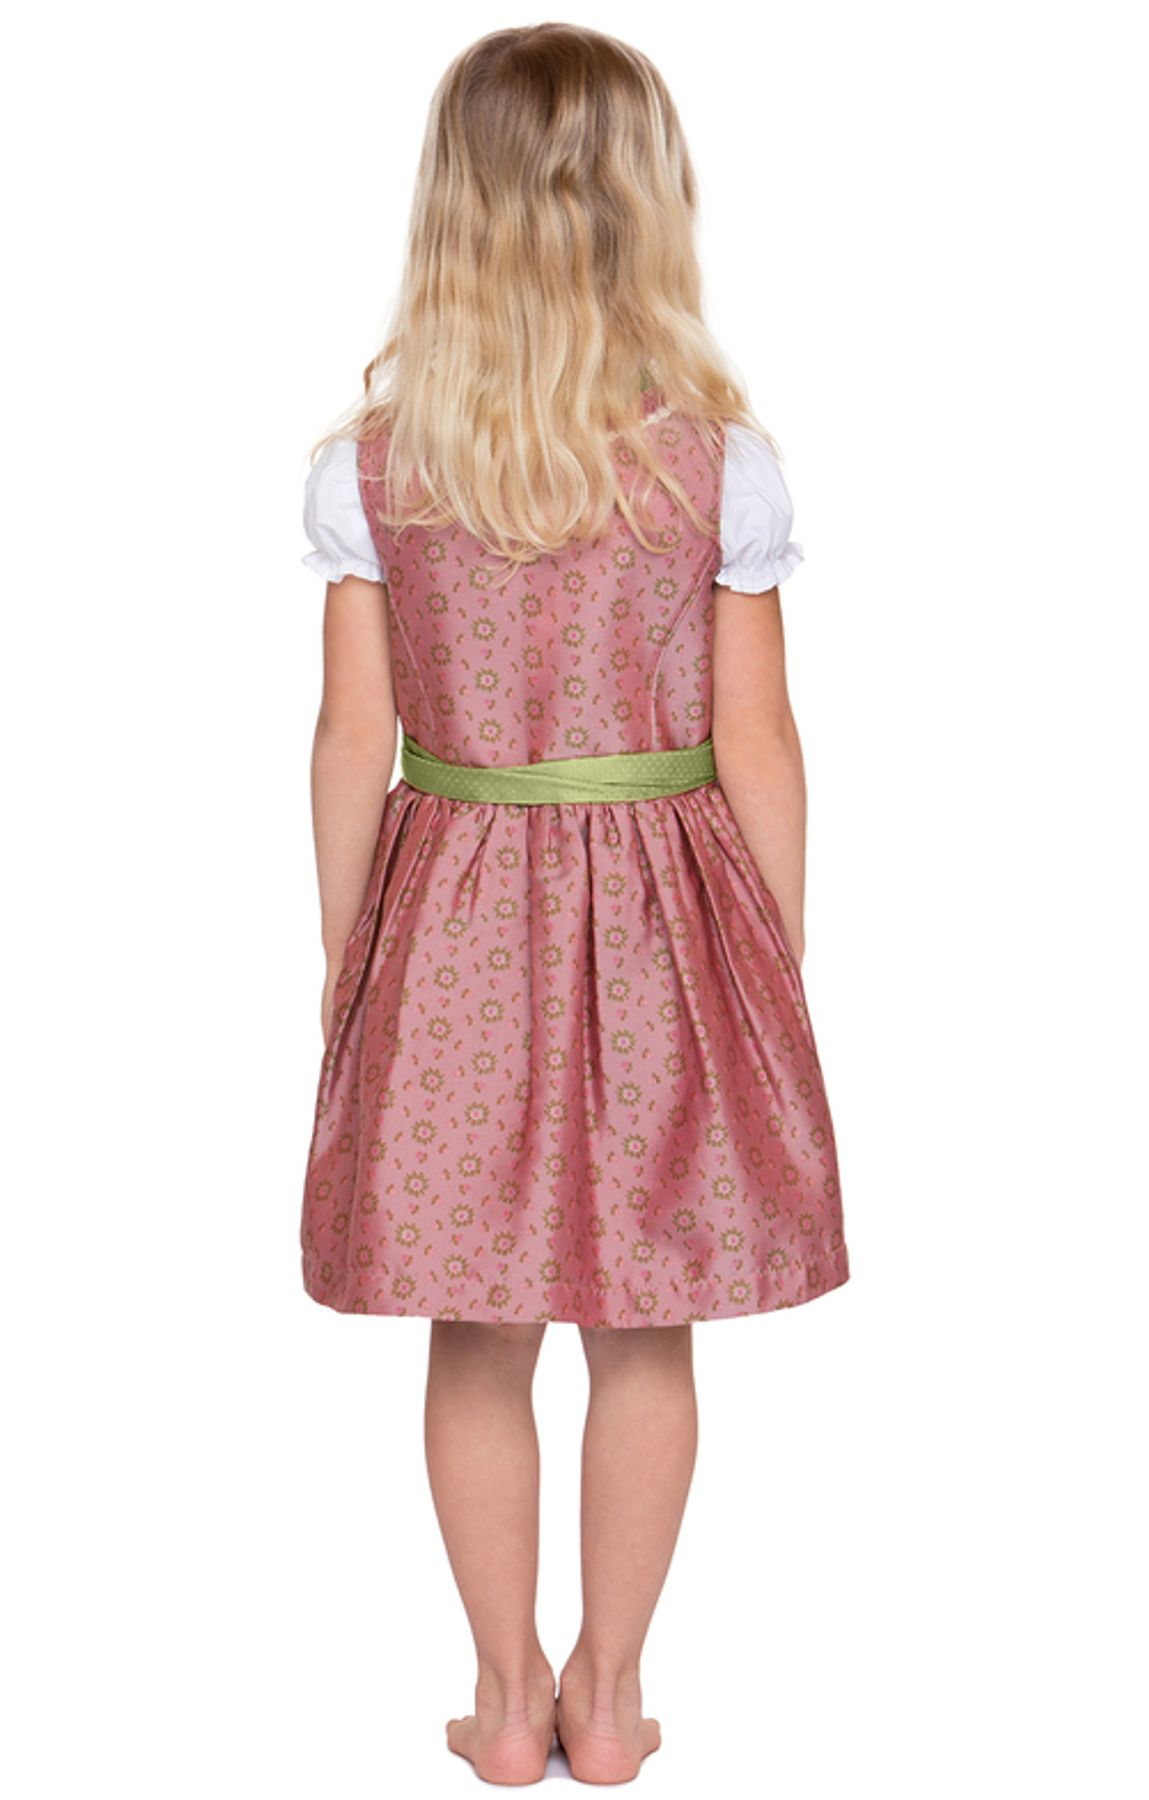 Stockerpoint - Kinder Trachten Dirndl Suki in Rose, Gr. 122-152 – Bild 4